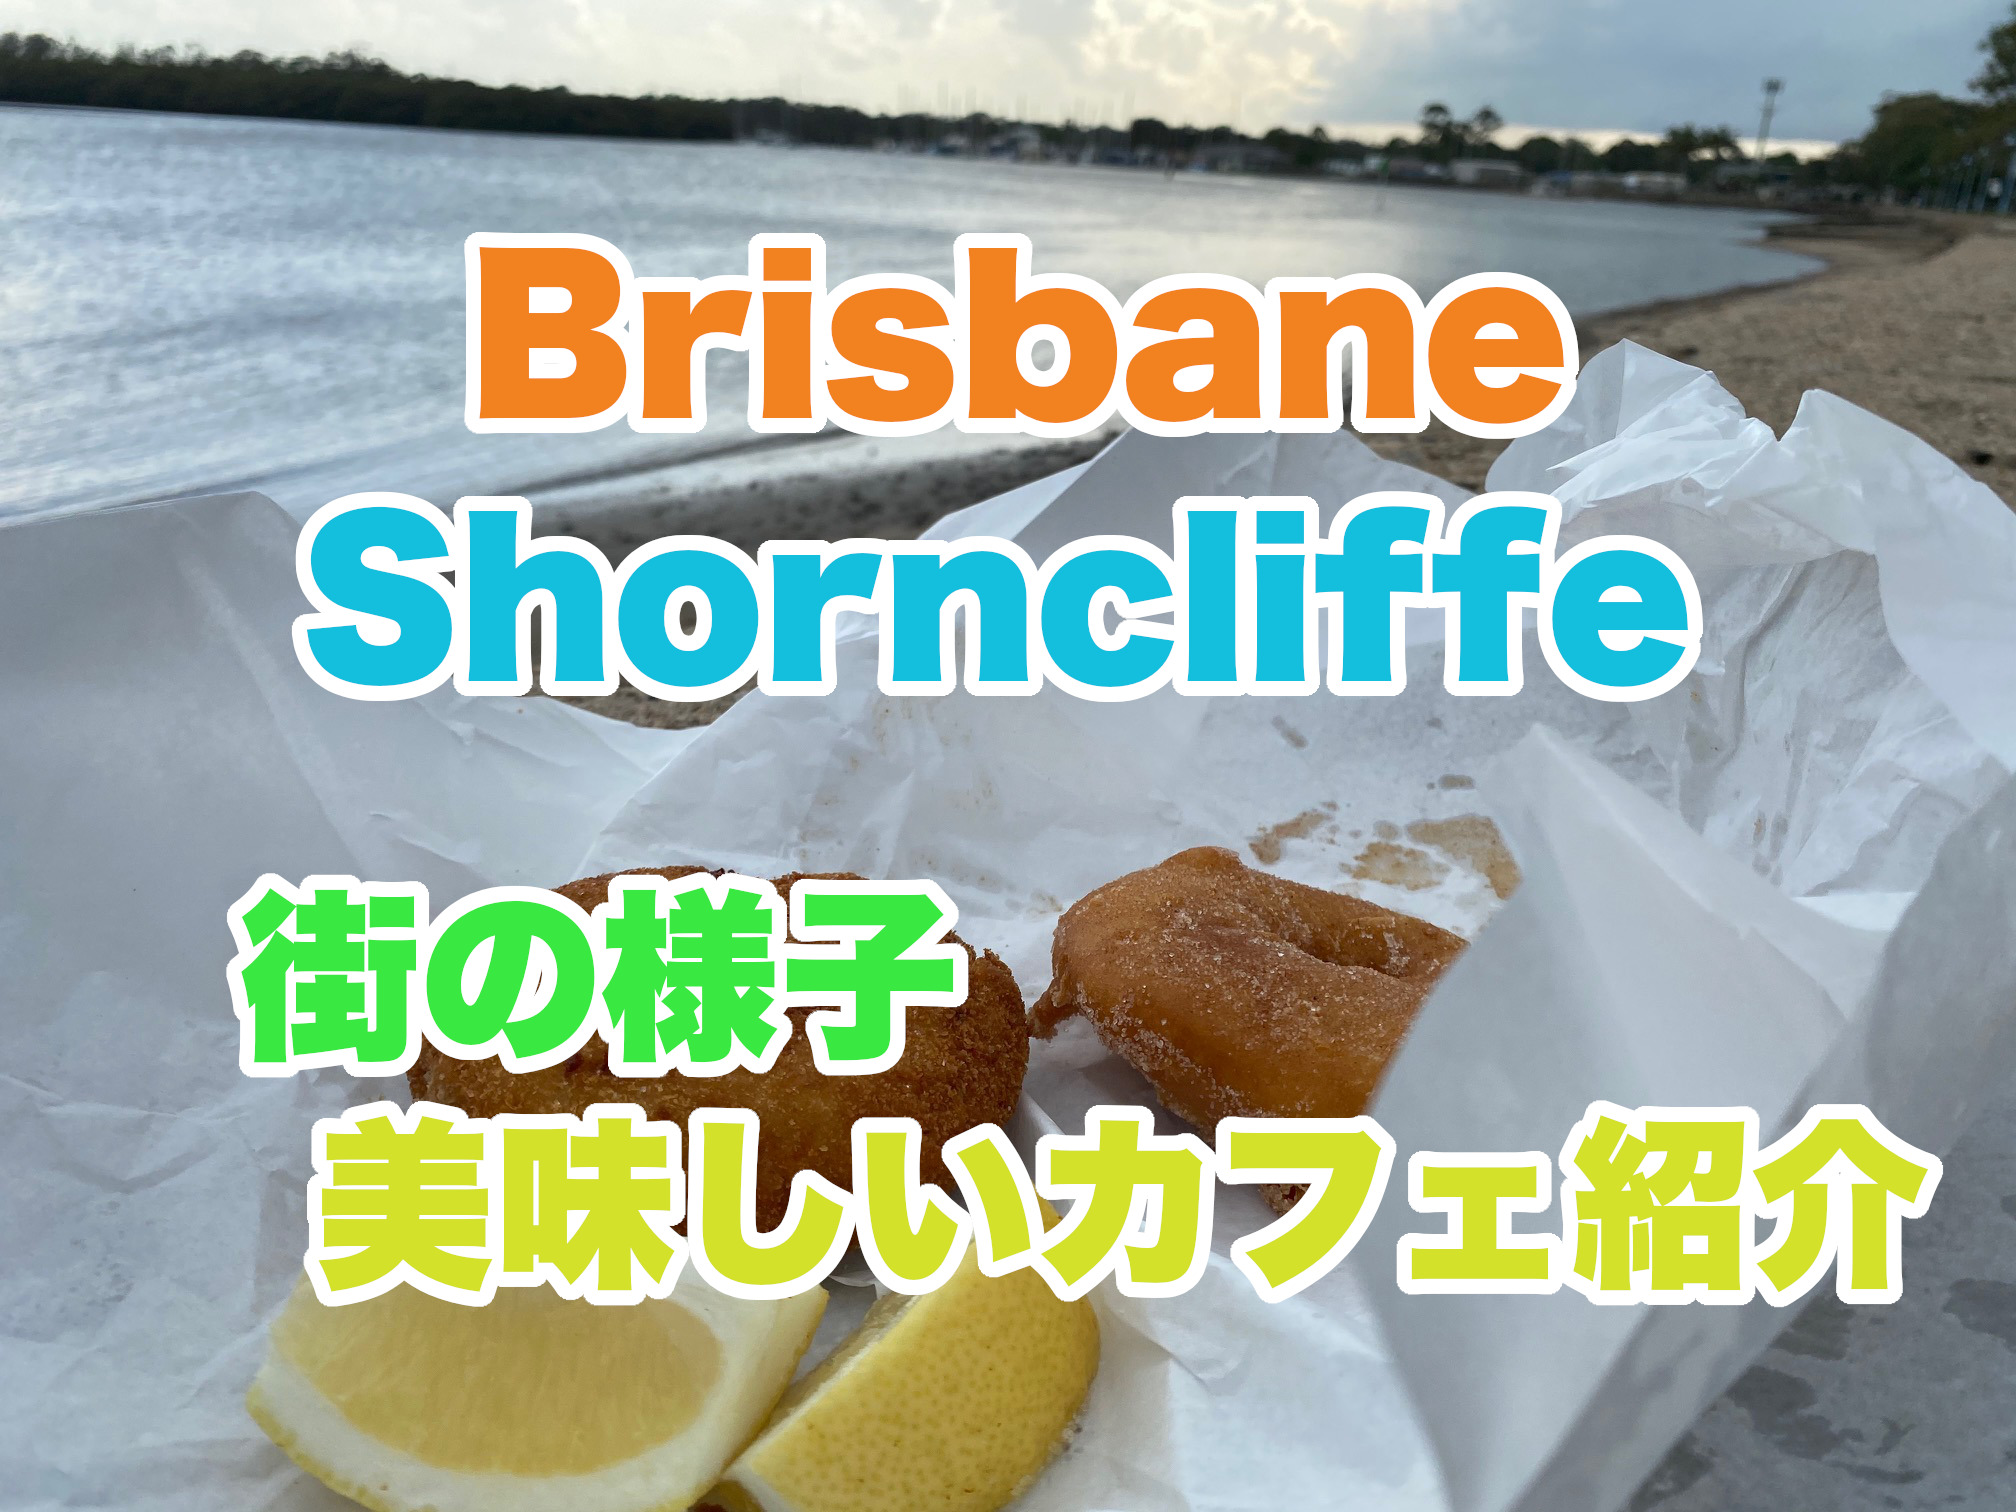 Shorncliffeの様子と美味しいカフェ紹介